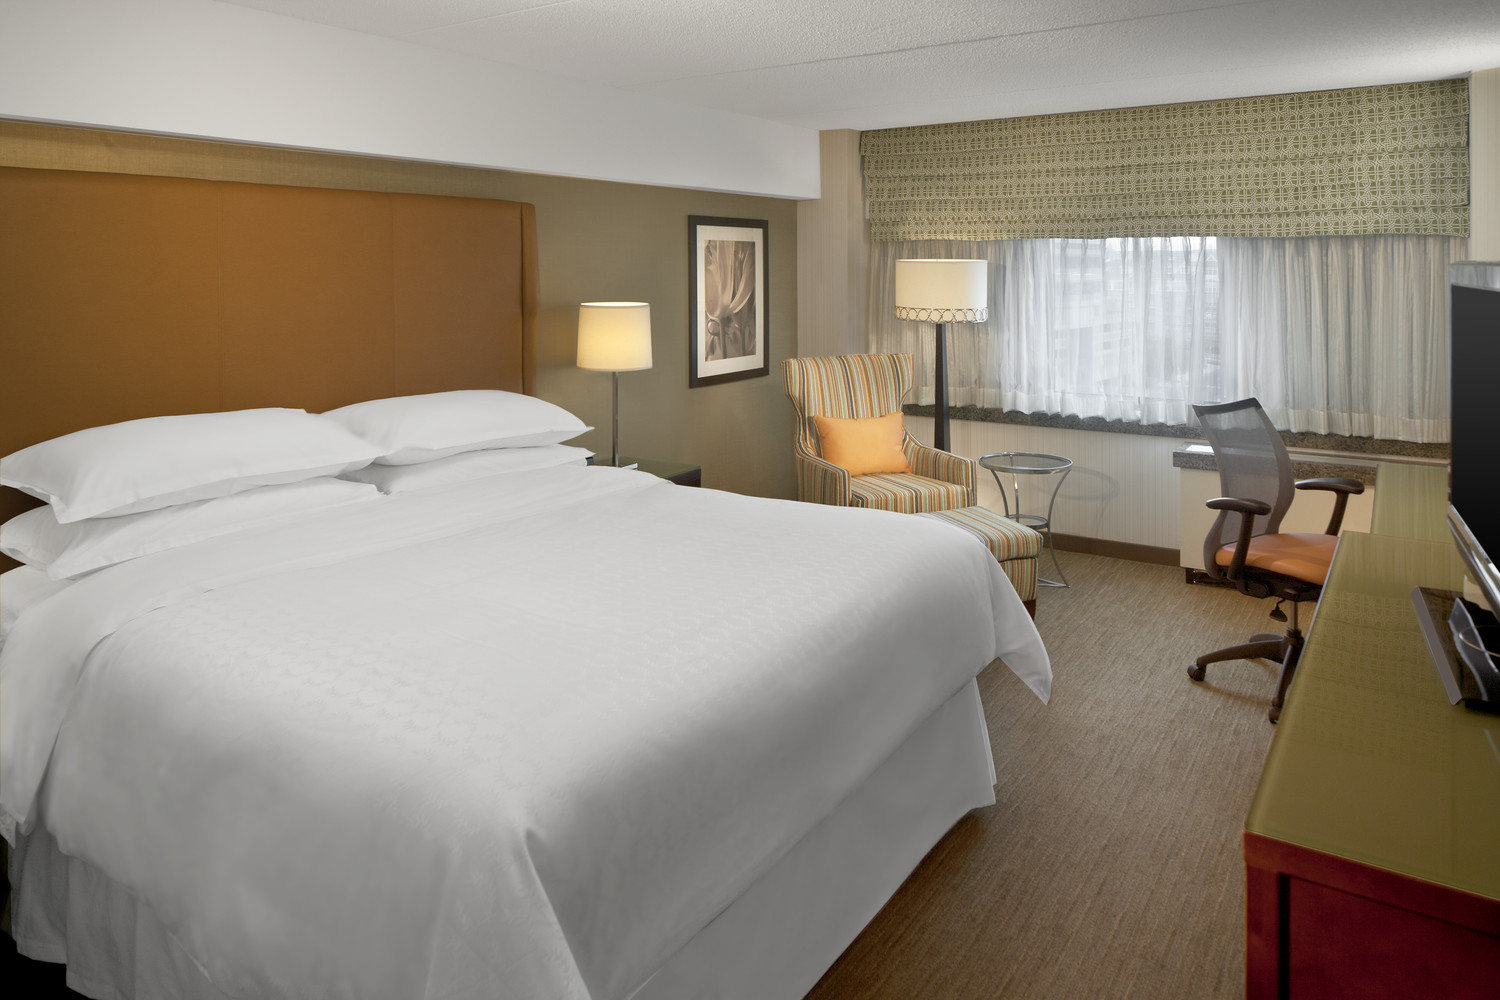 Holiday Inn Select - Stamford - Downtown